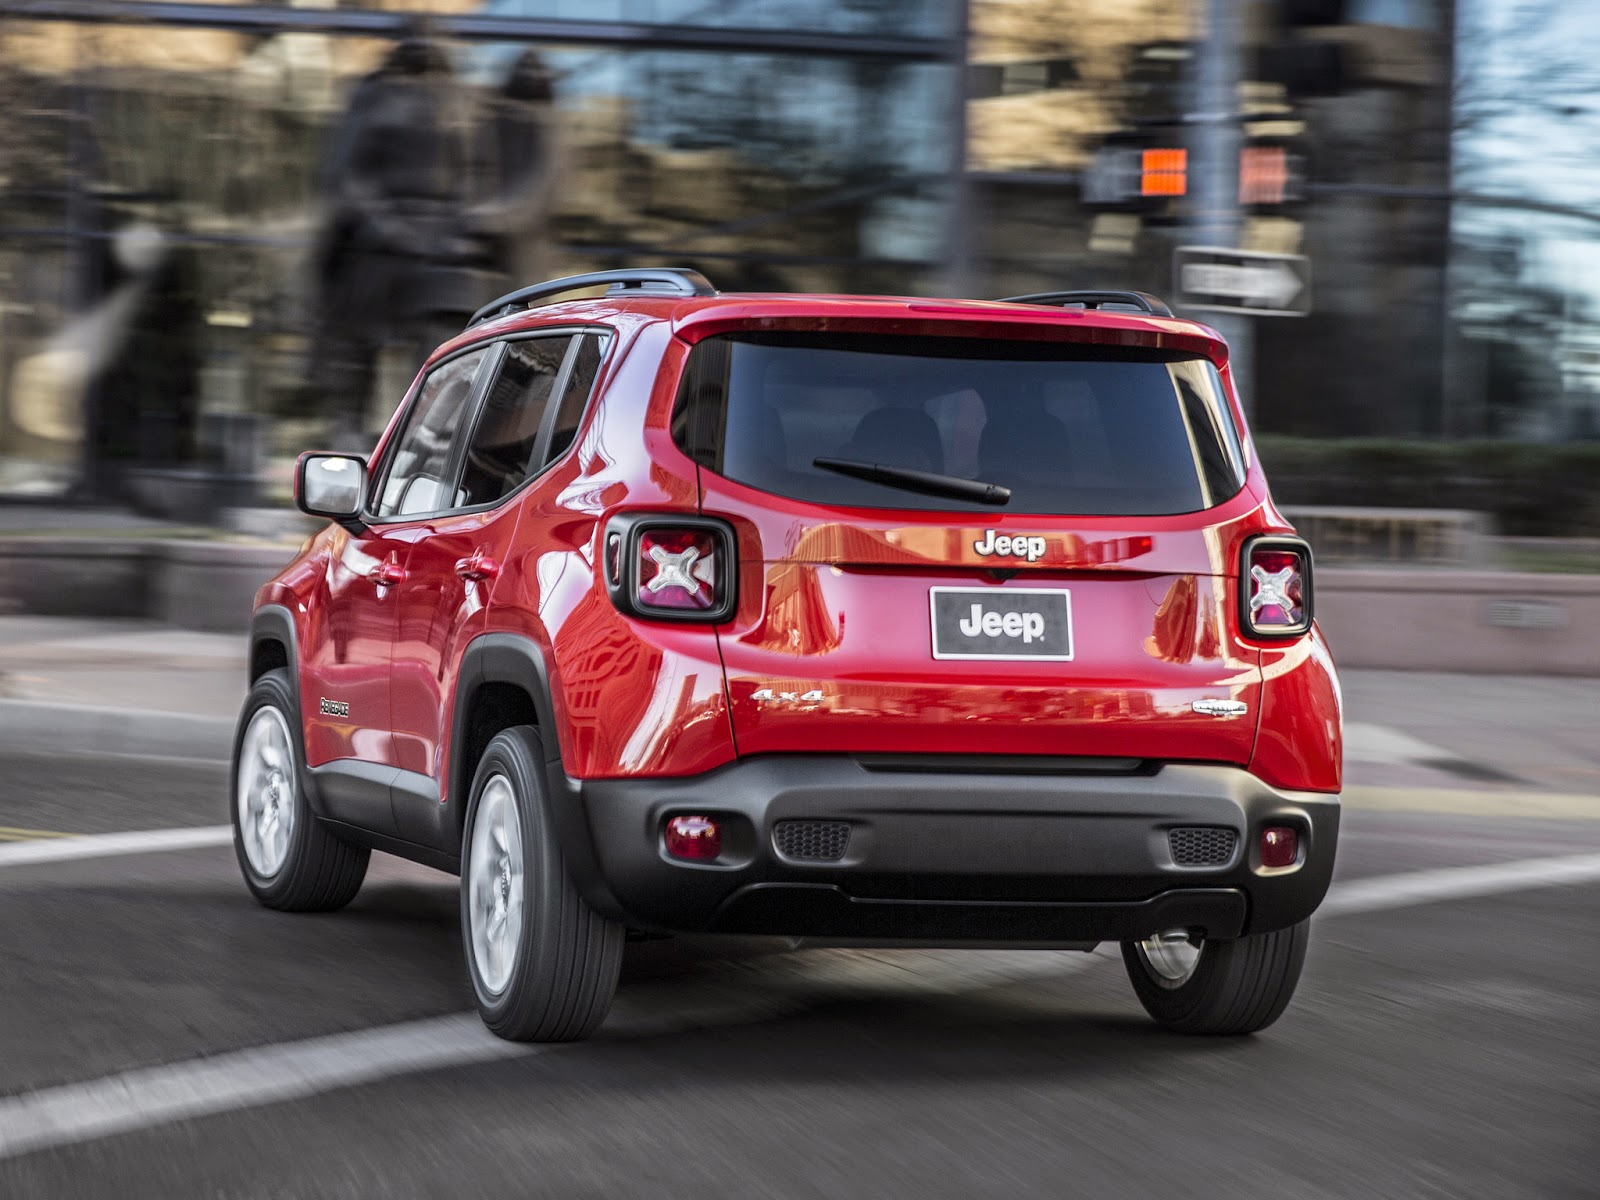 jeep_renegade_5.jpg